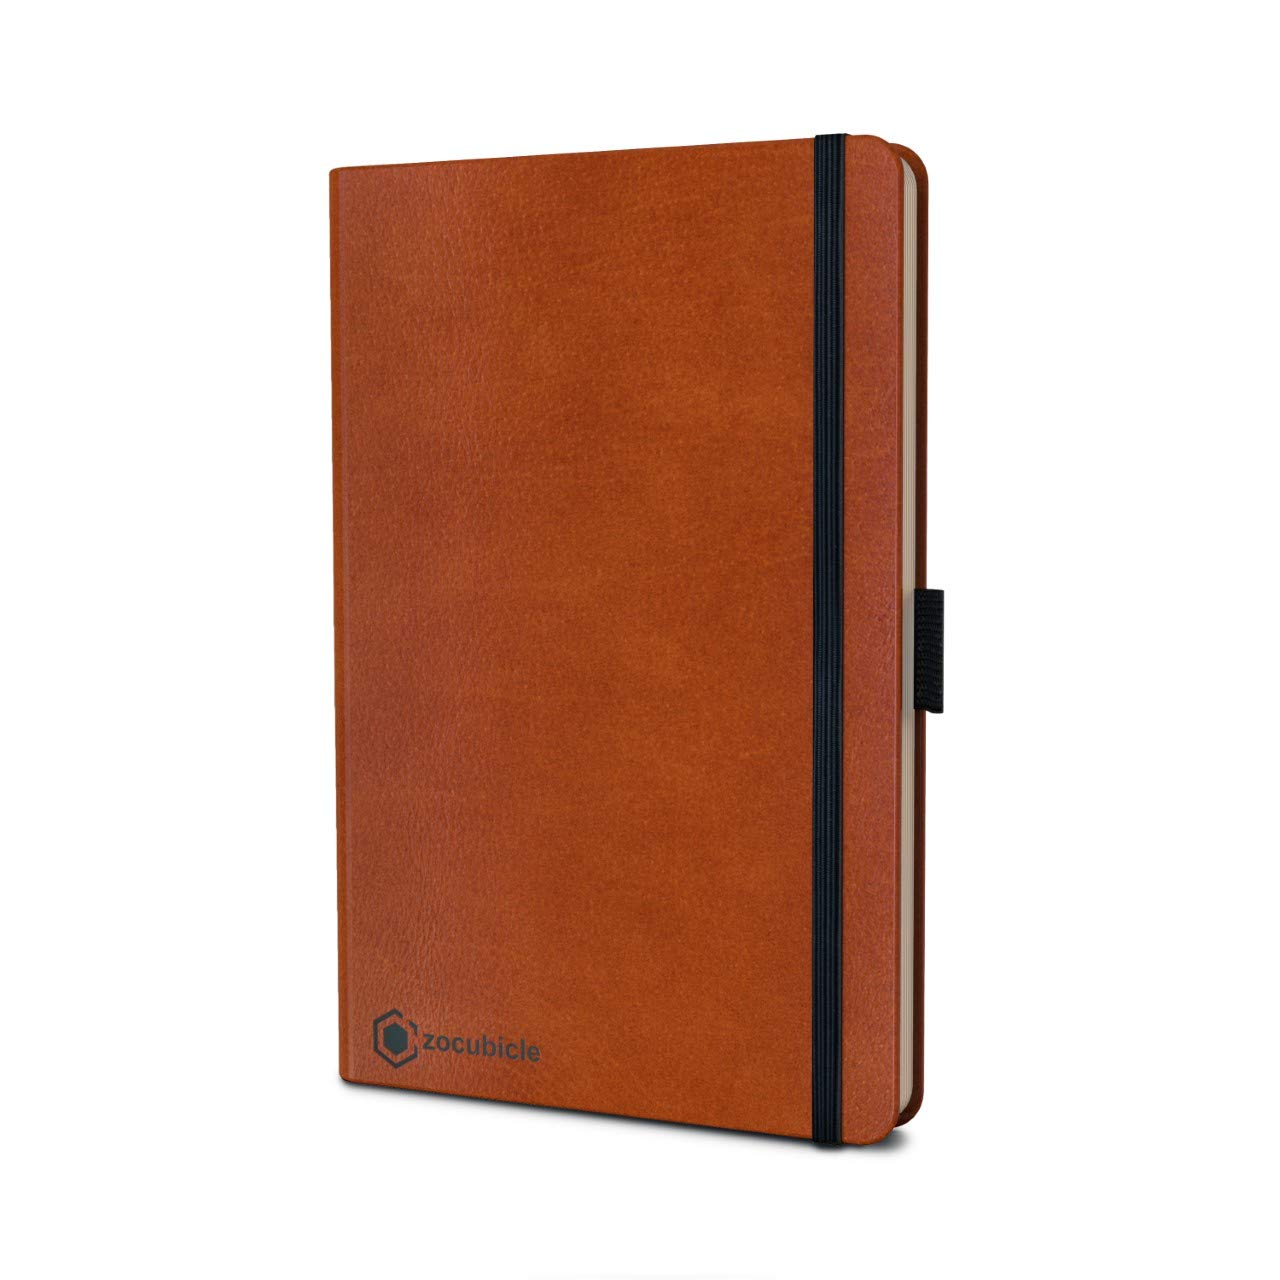 2019 Hardcover Weekly Planner. A5 Weekly and Monthly Premium Quality hardcover and Wood - Free Inner Pages Professional Organizer.